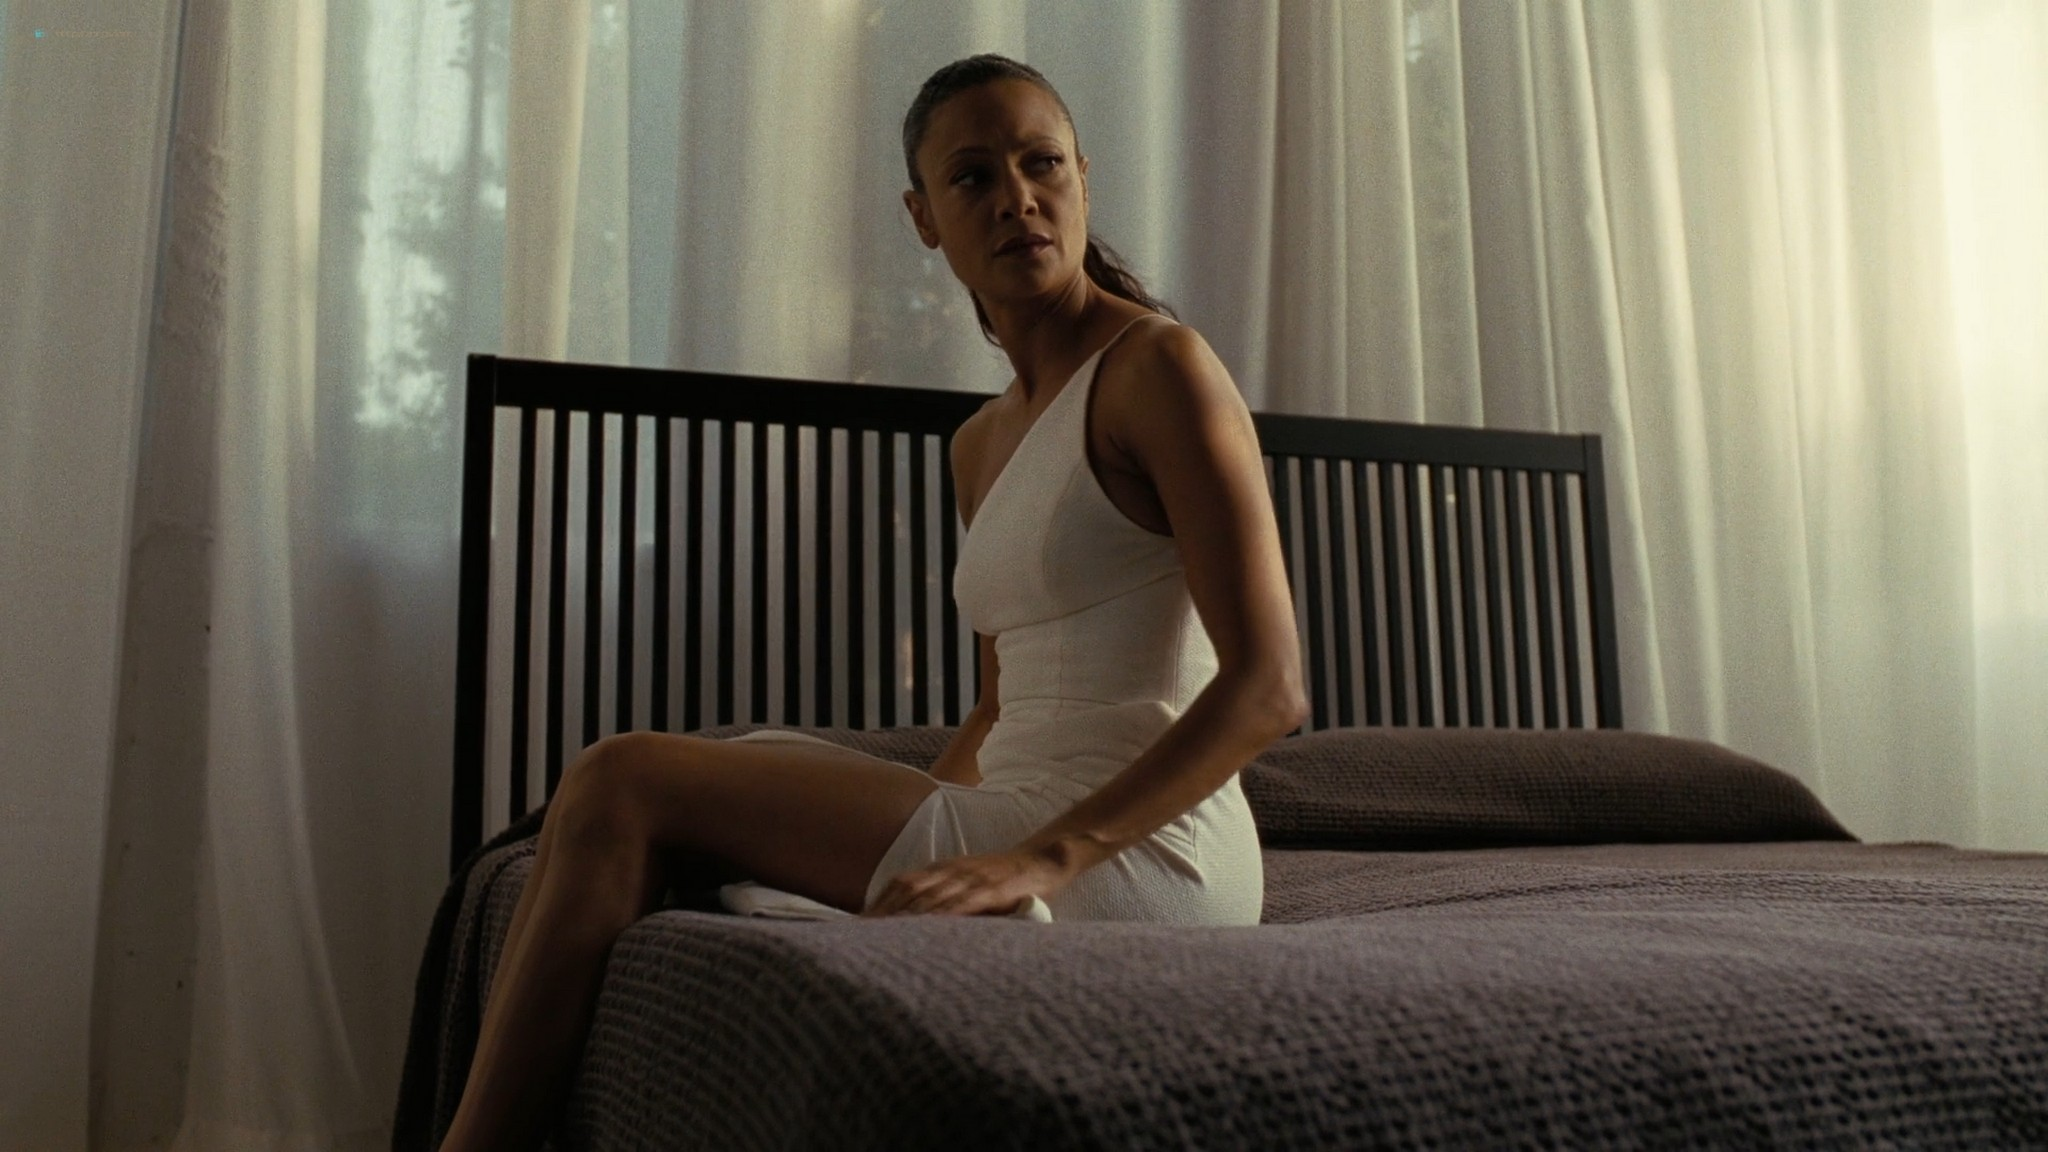 Thandie Newton nude others nude full frontal - Westworld (2020) s3e2 HD 1080p (2)